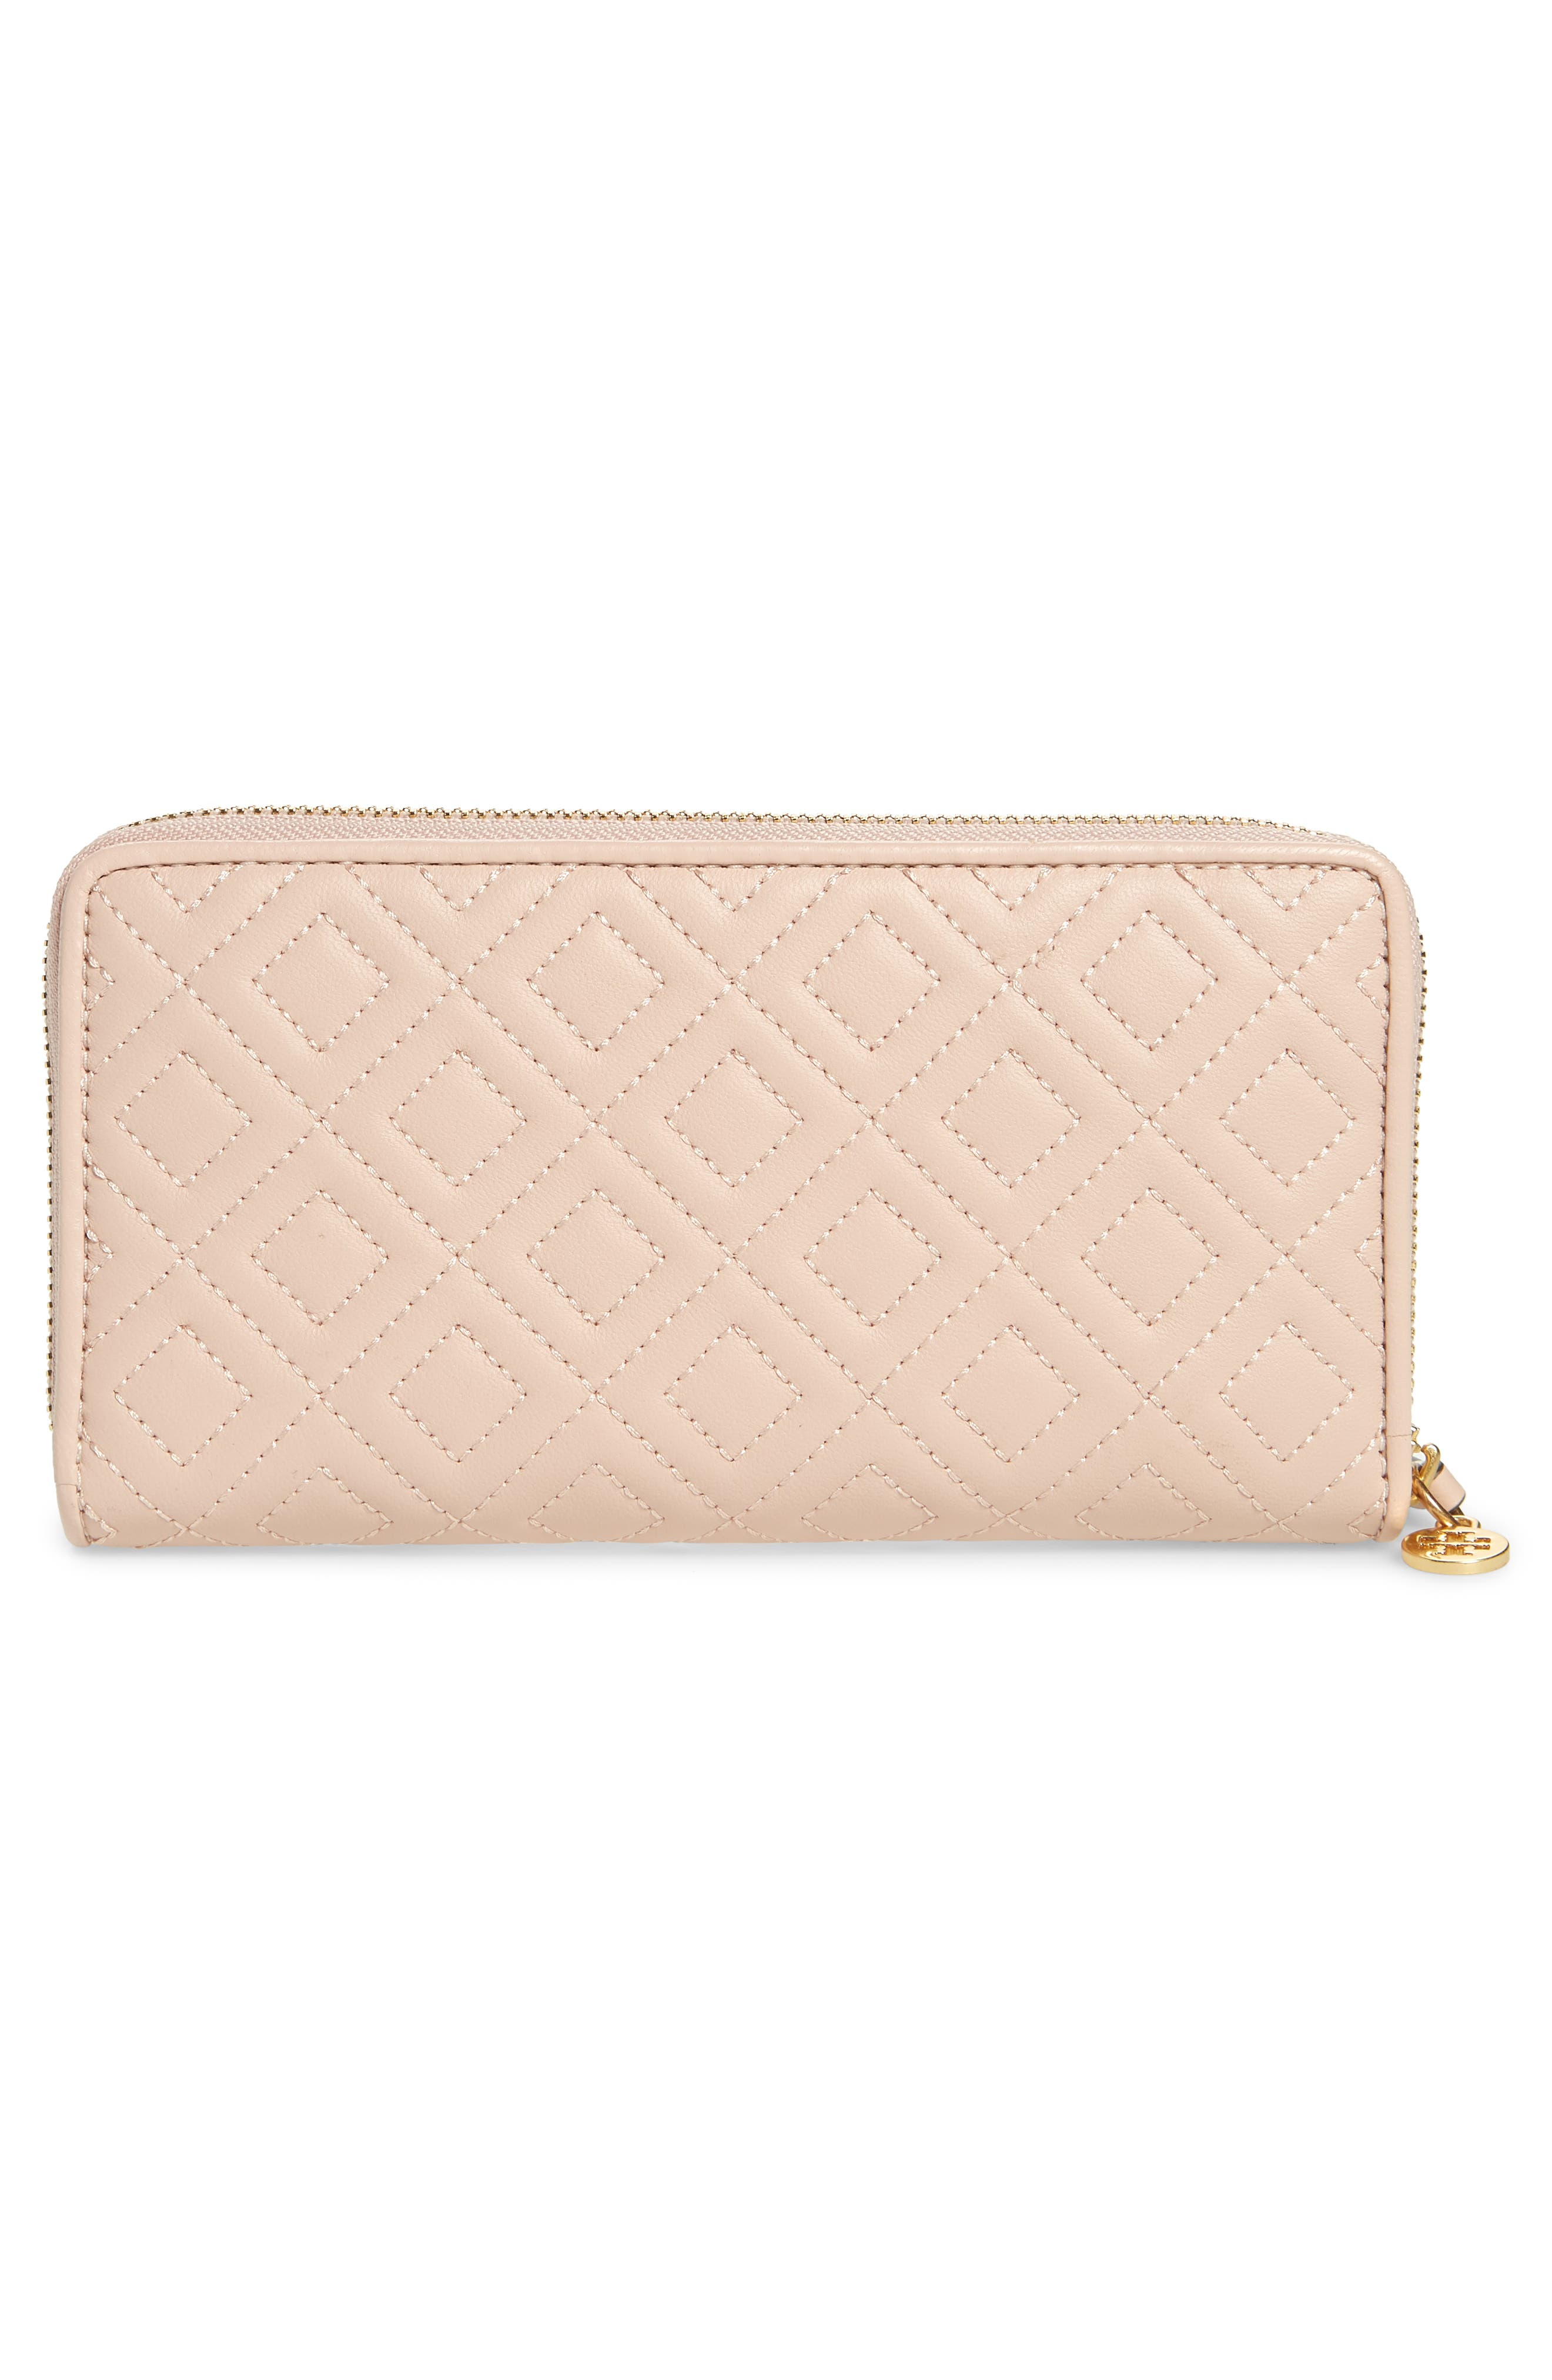 Fleming Leather Zip Around Wallet,                             Alternate thumbnail 3, color,                             SHELL PINK